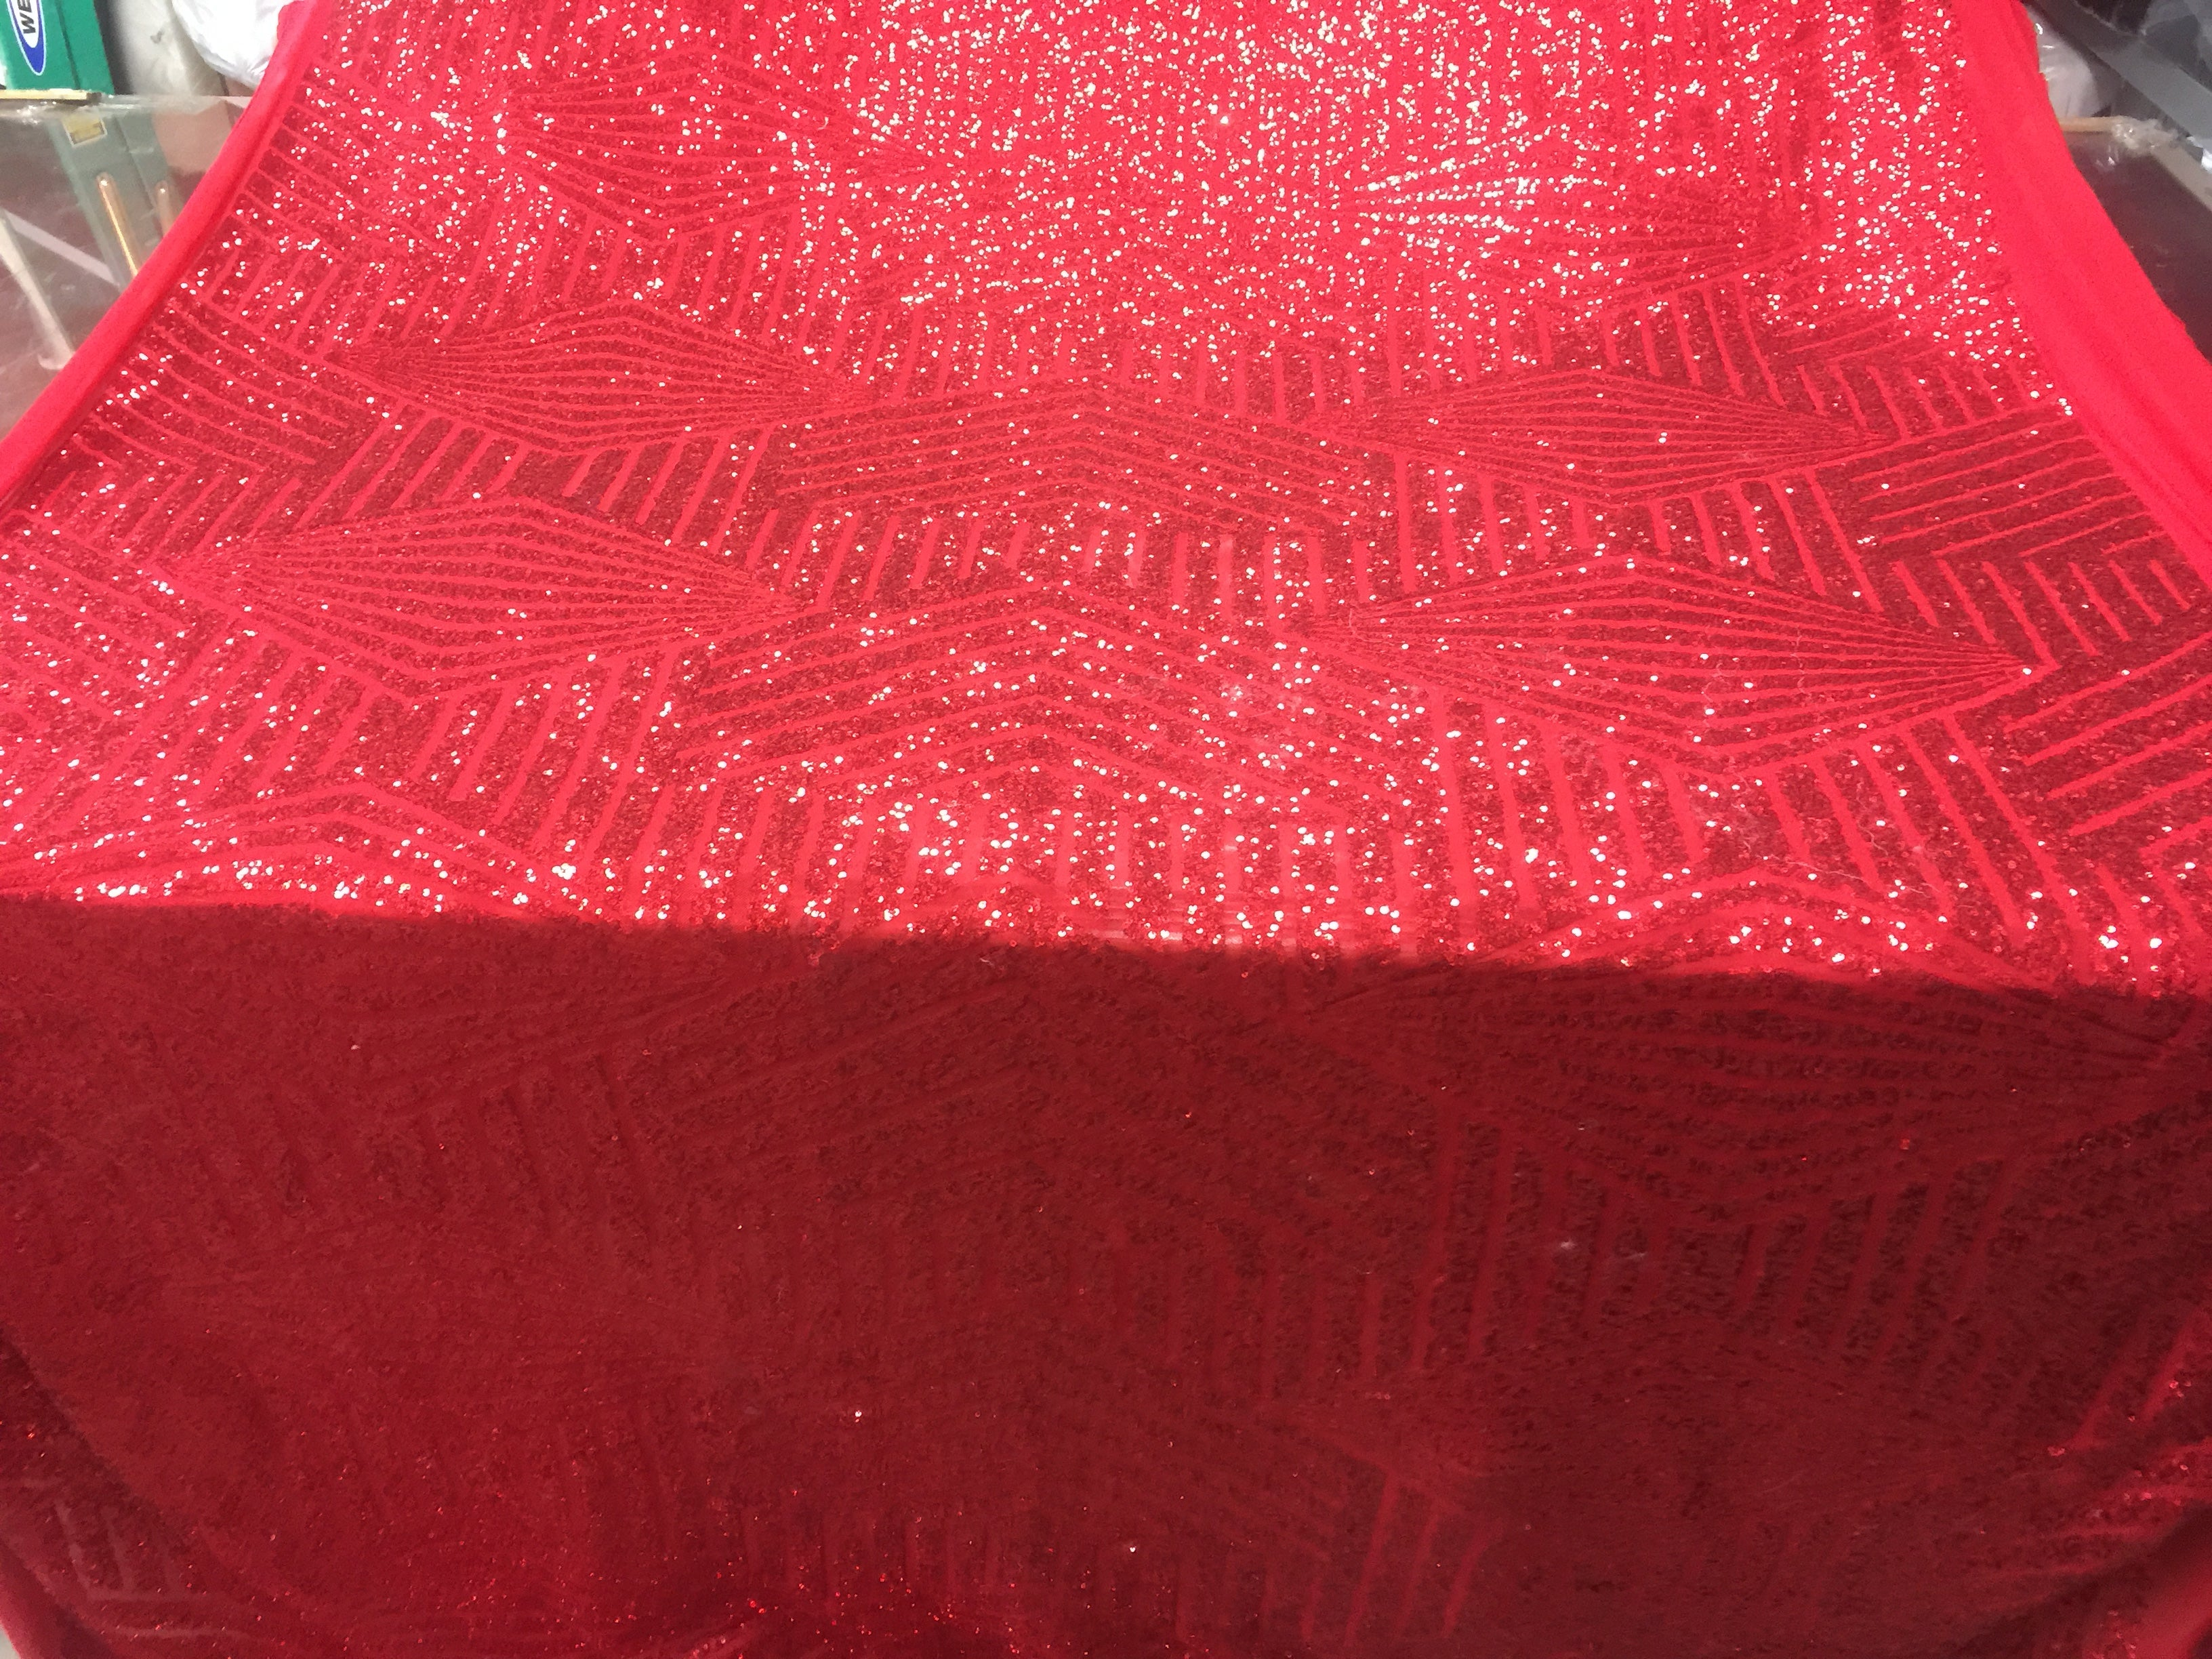 Sequins Fabric - Geometric Diamond Sequin Shiny Luxury Red Mesh Lace By The Yard 4-way stretch - KINGDOM OF FABRICS